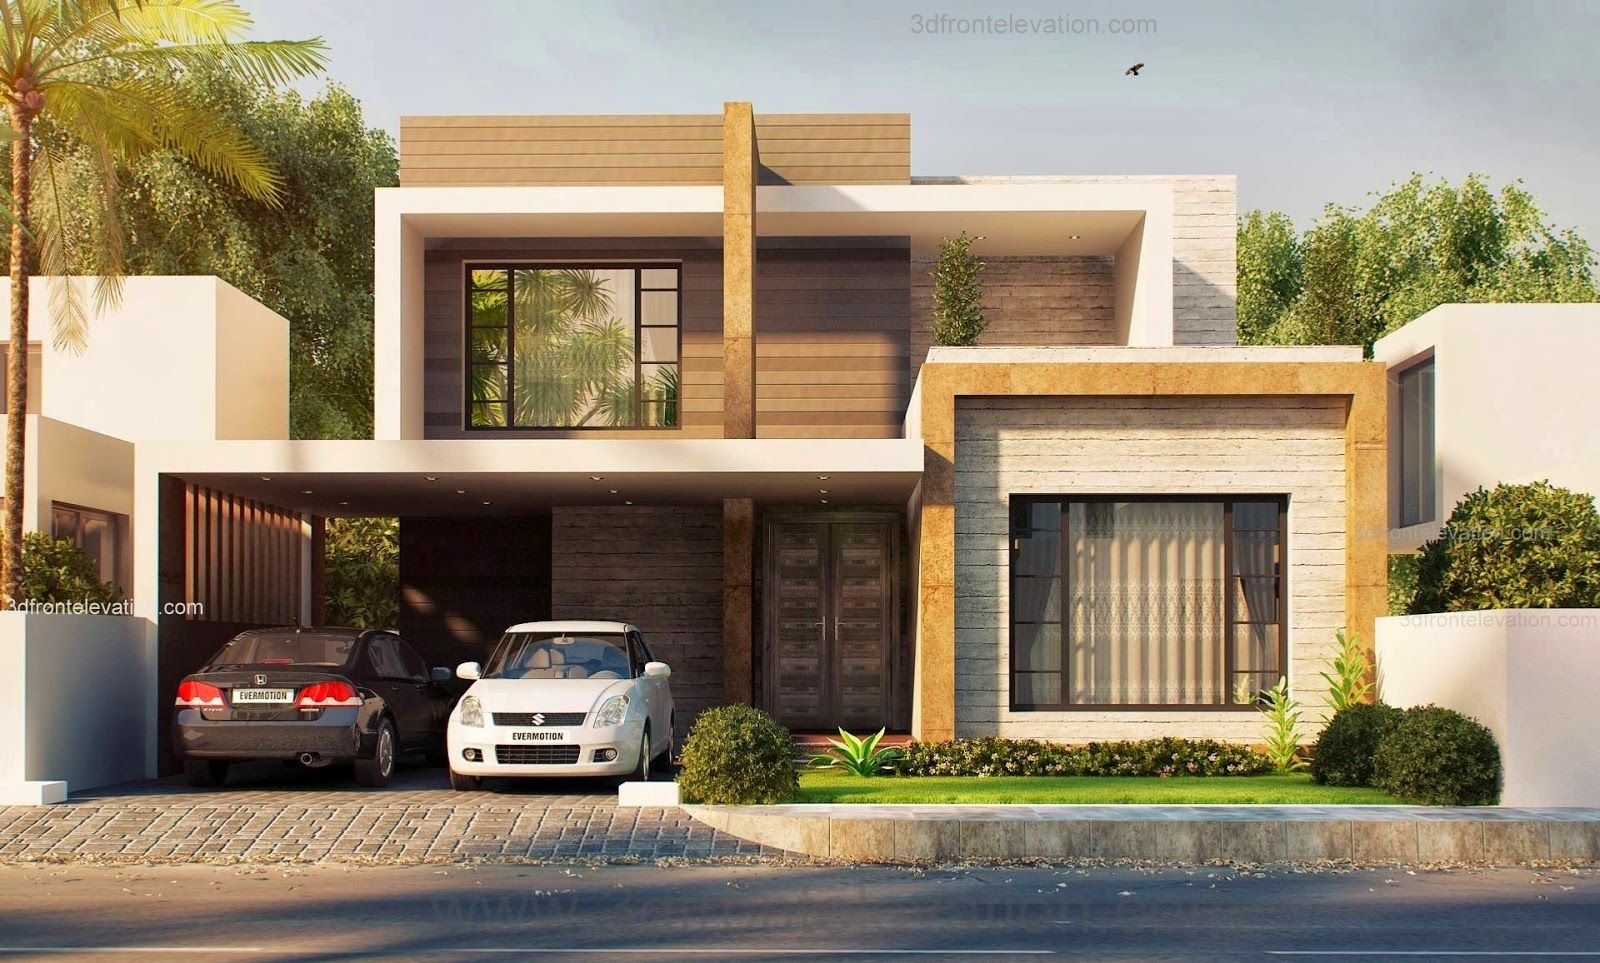 10 marla modern house plan beautiful latest pakistani for 5 marla house modern design